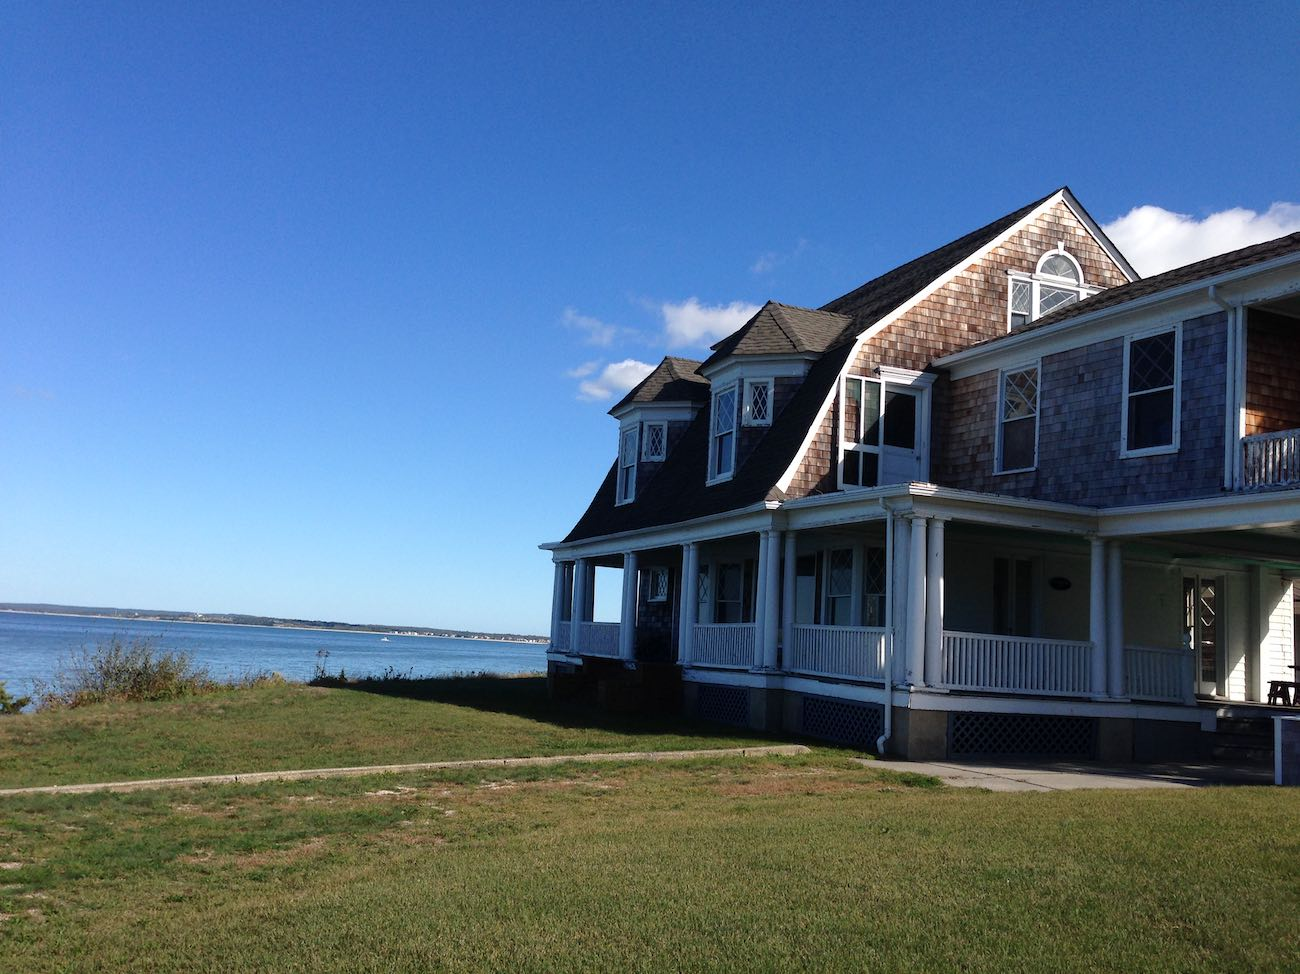 The Bluff House in Southampton